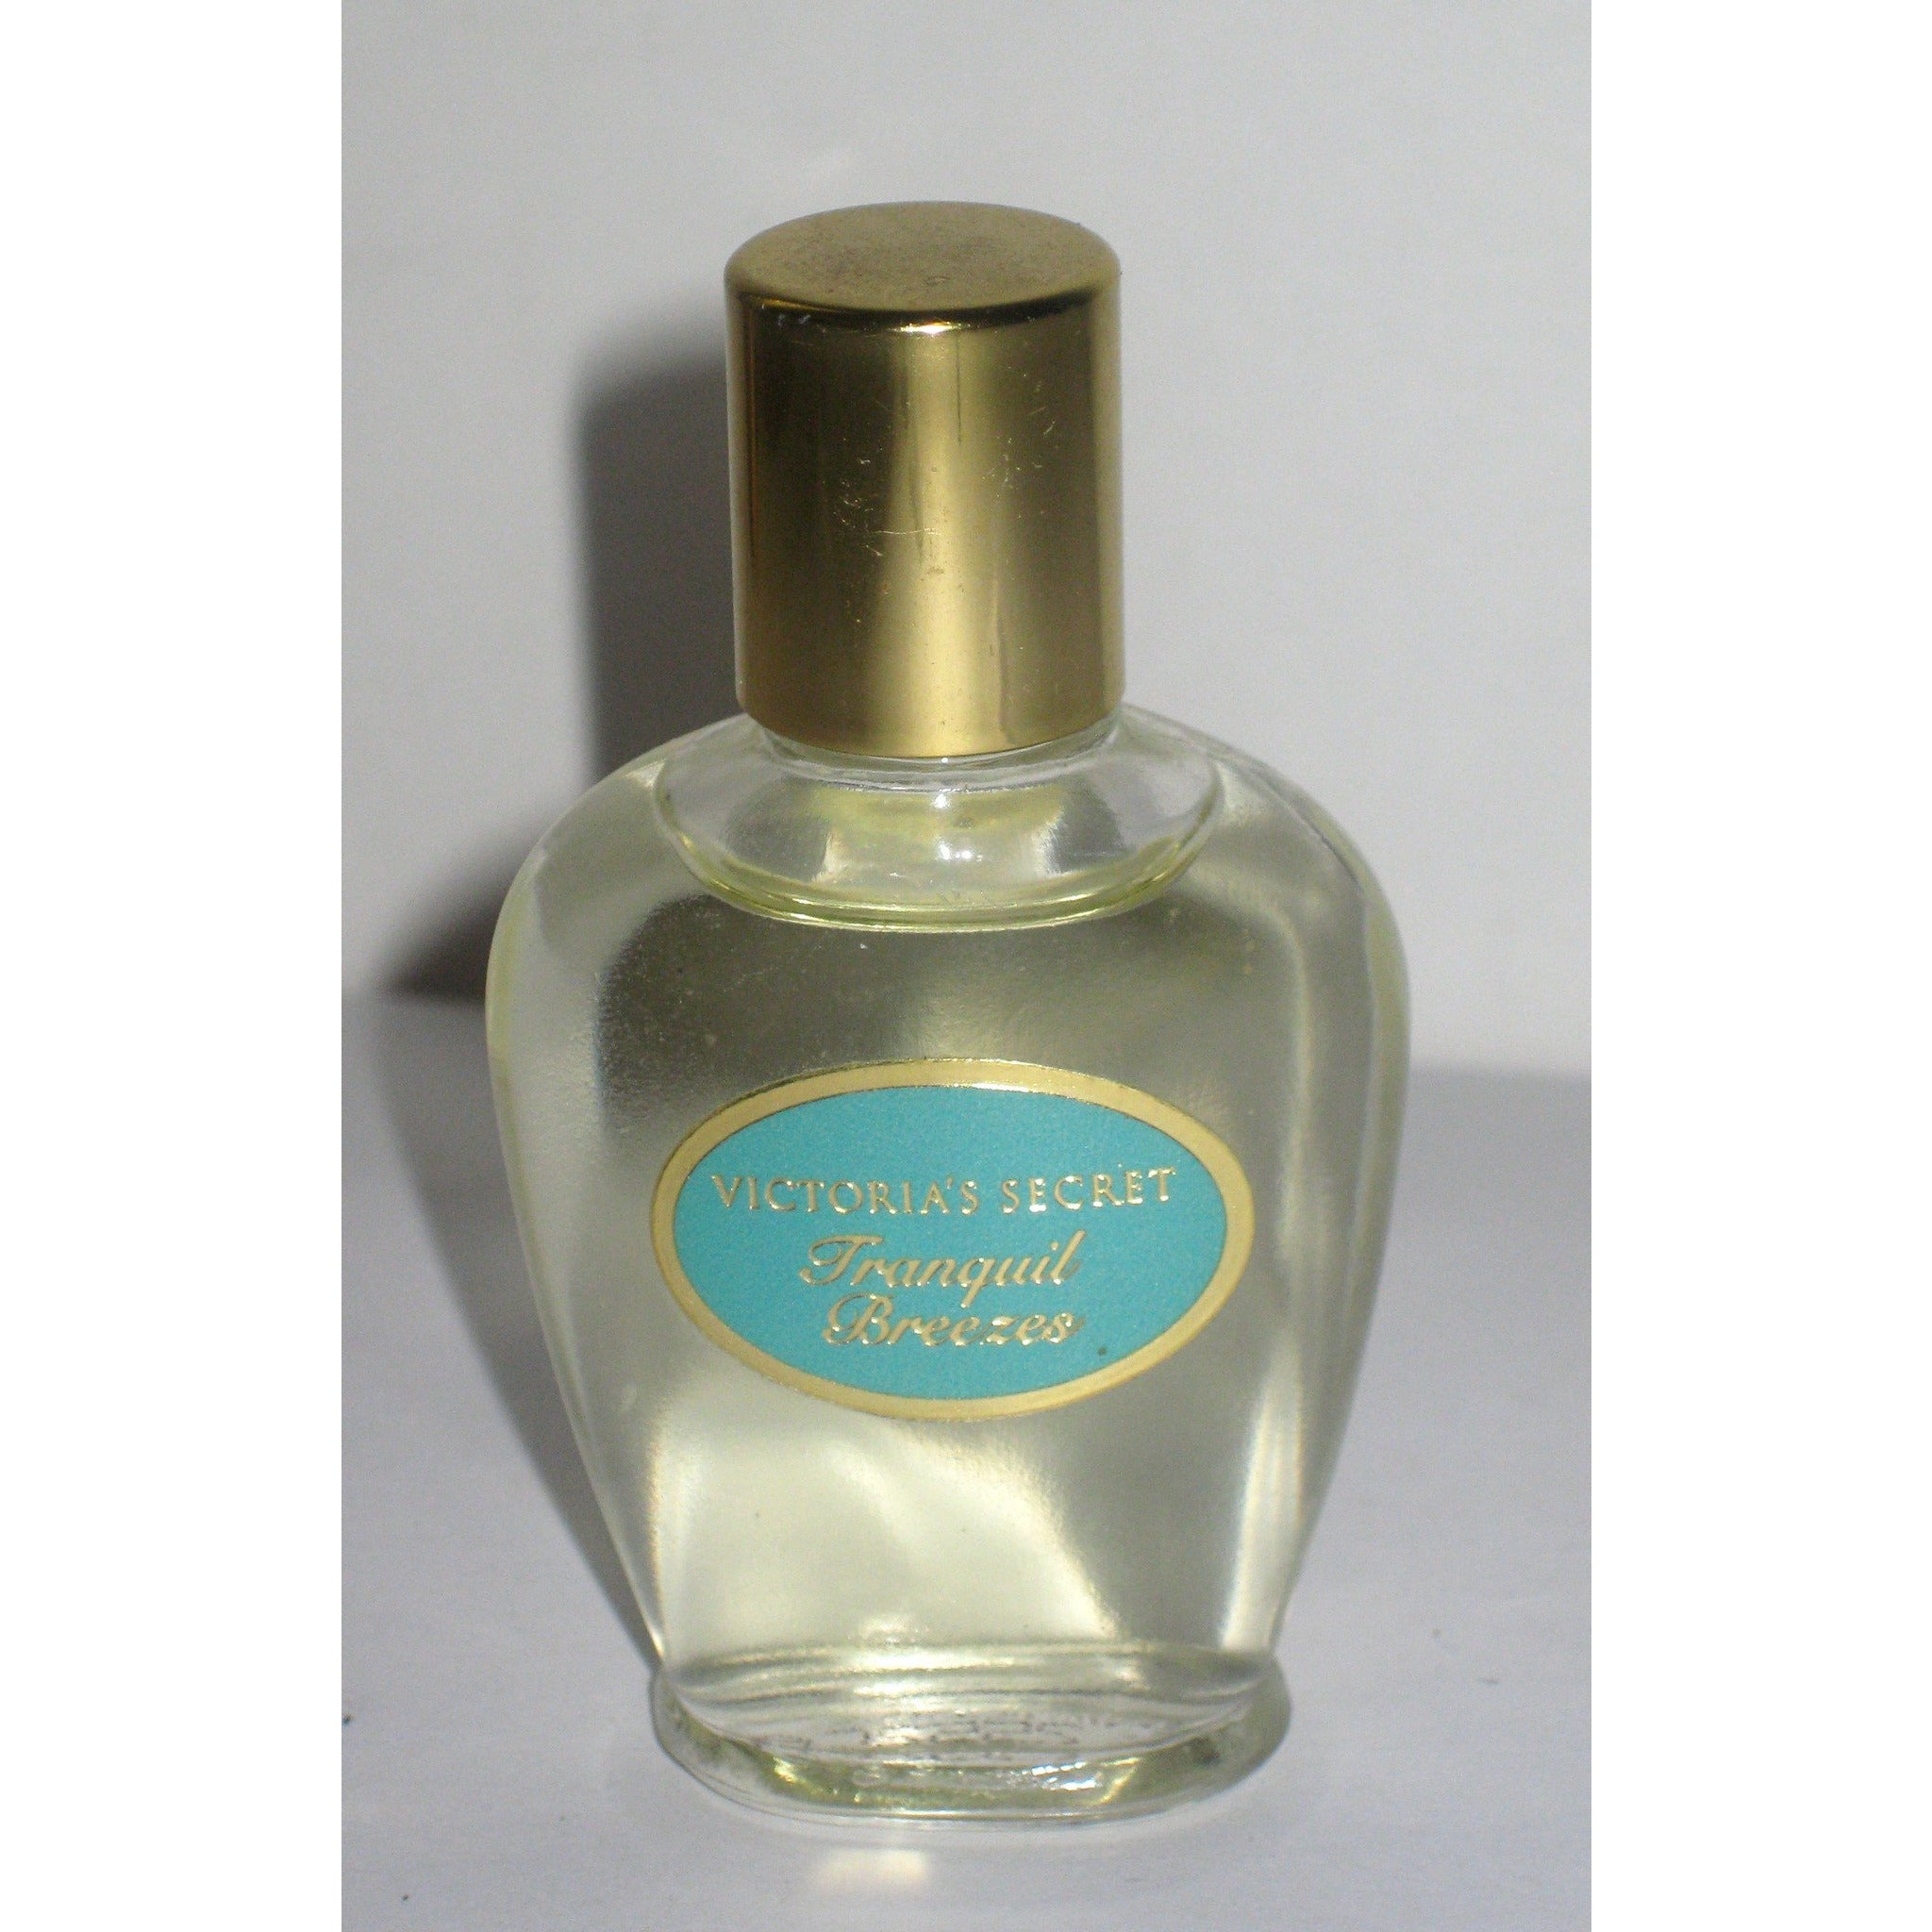 Vintage Victoria's Secret Traquil Breezes Cologne